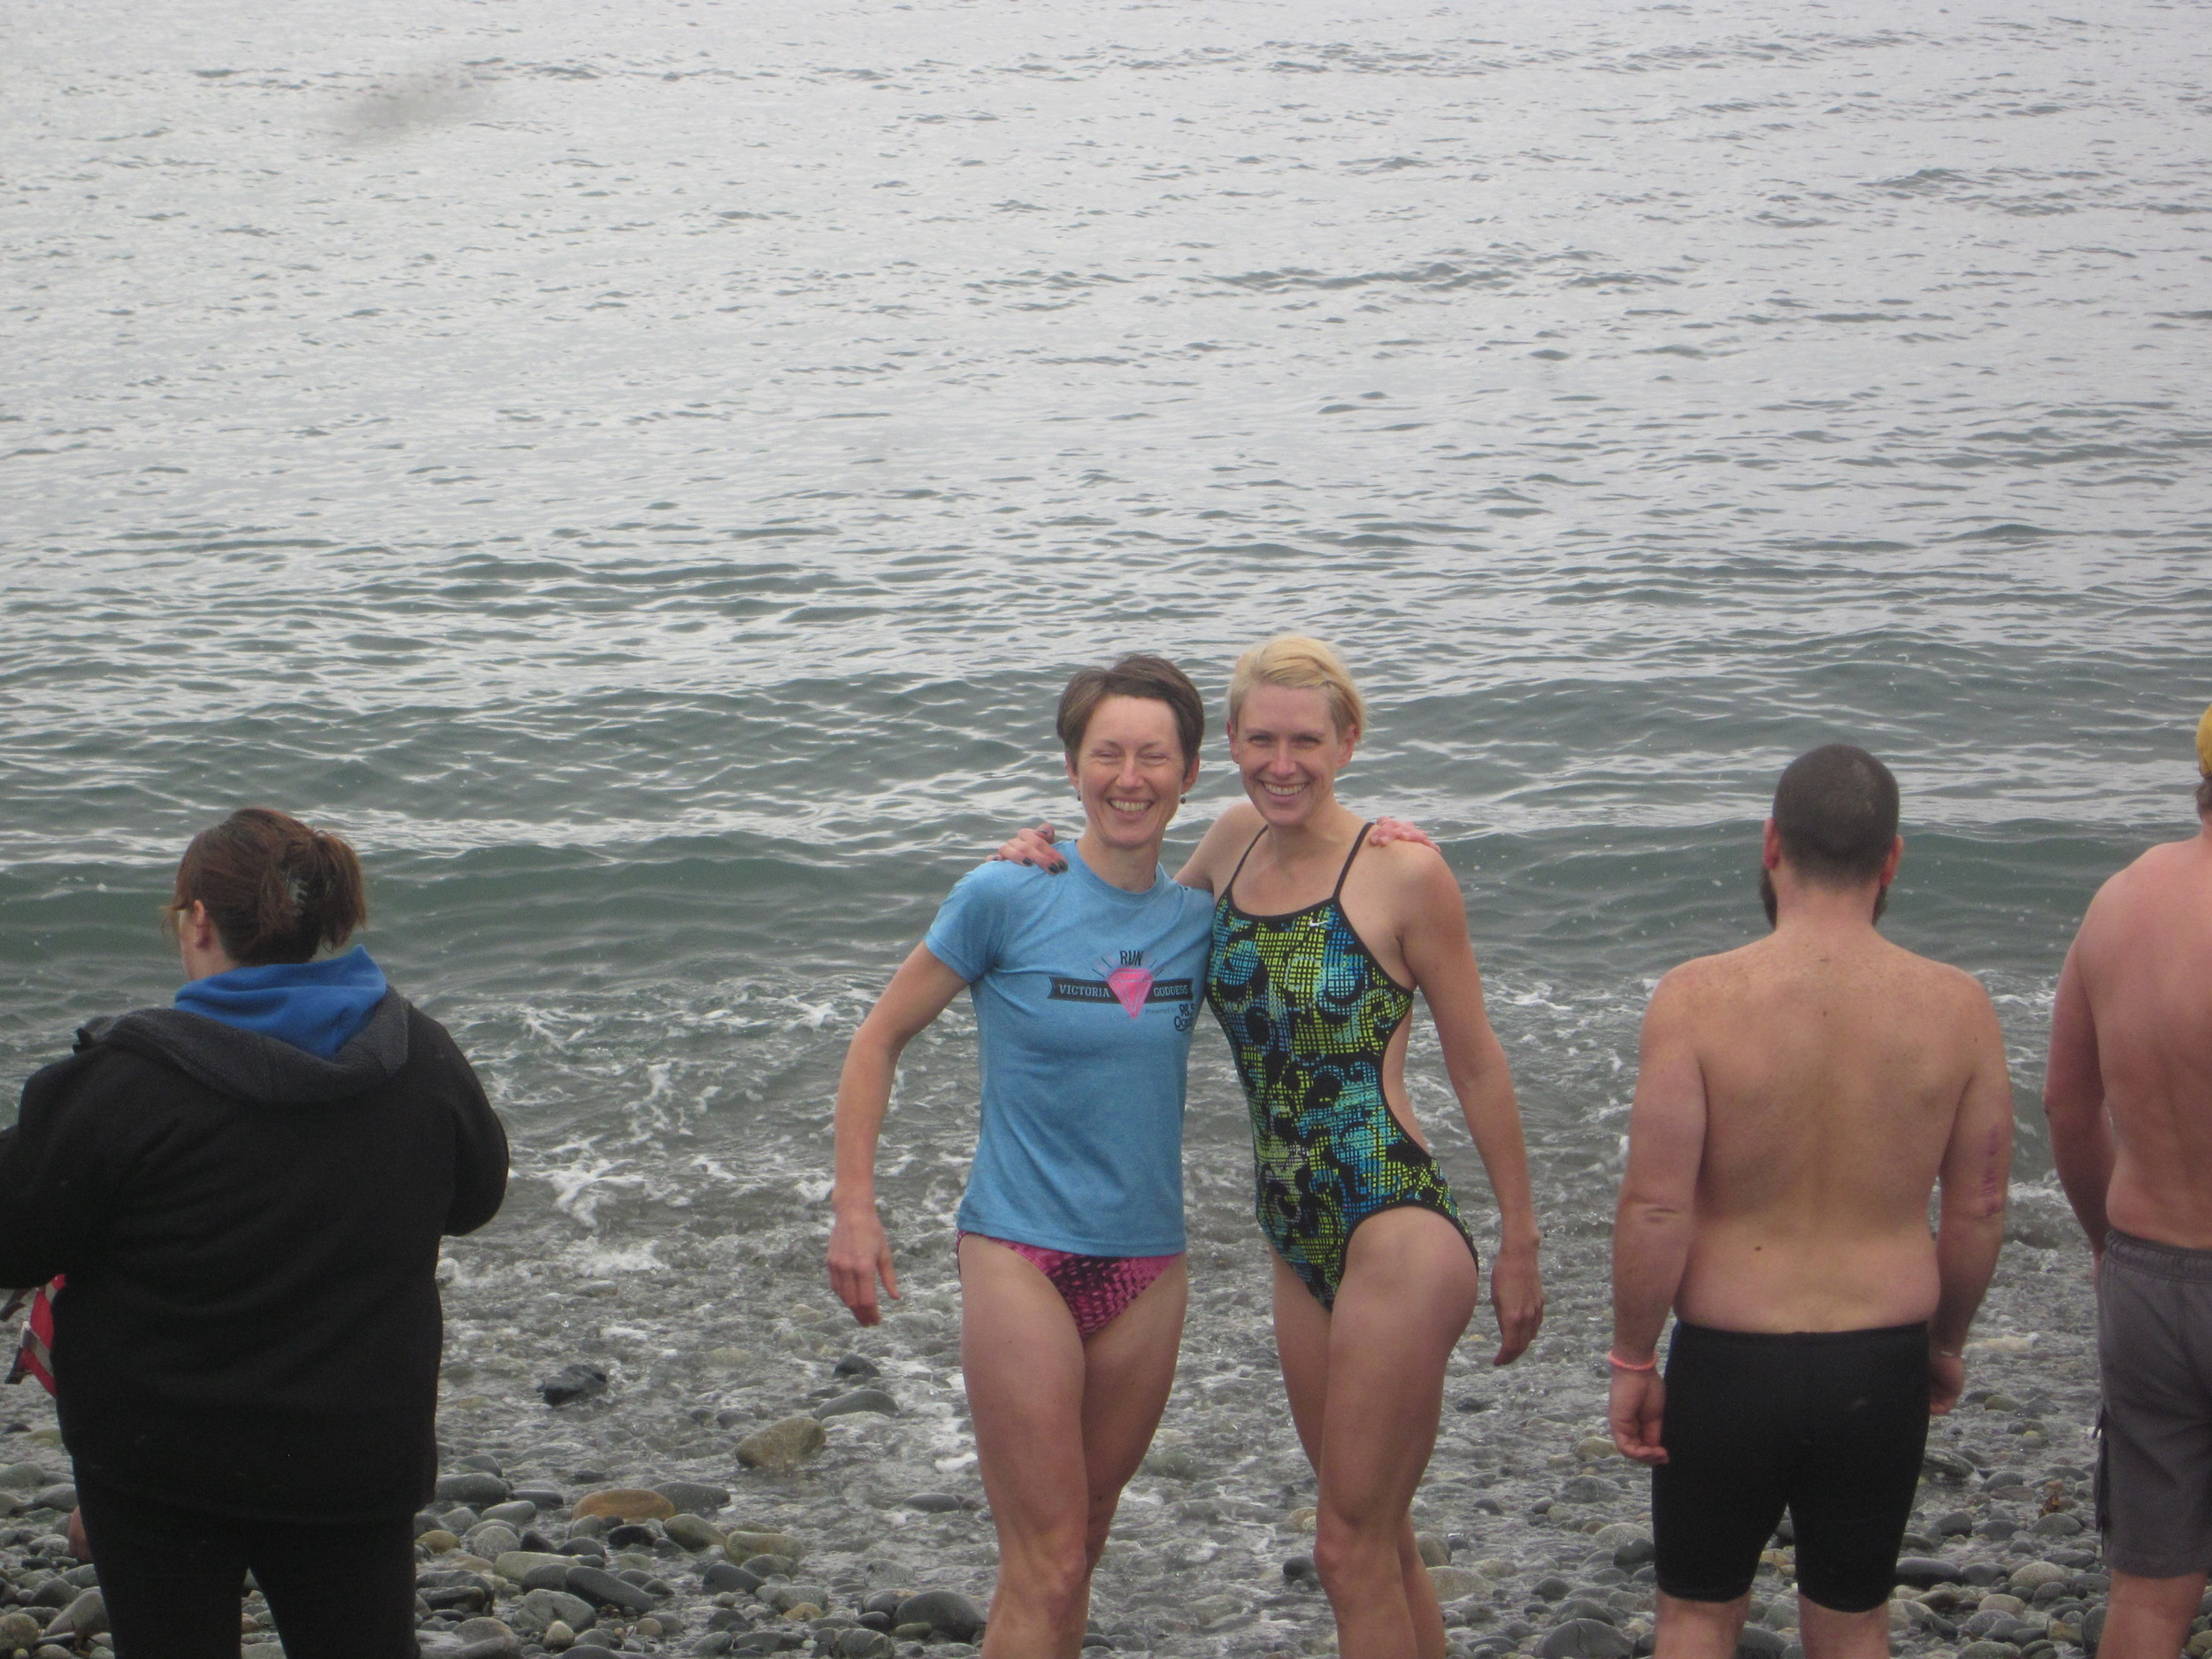 2014 New Year's Day polar bear swim in Sooke: Tory and Amanda